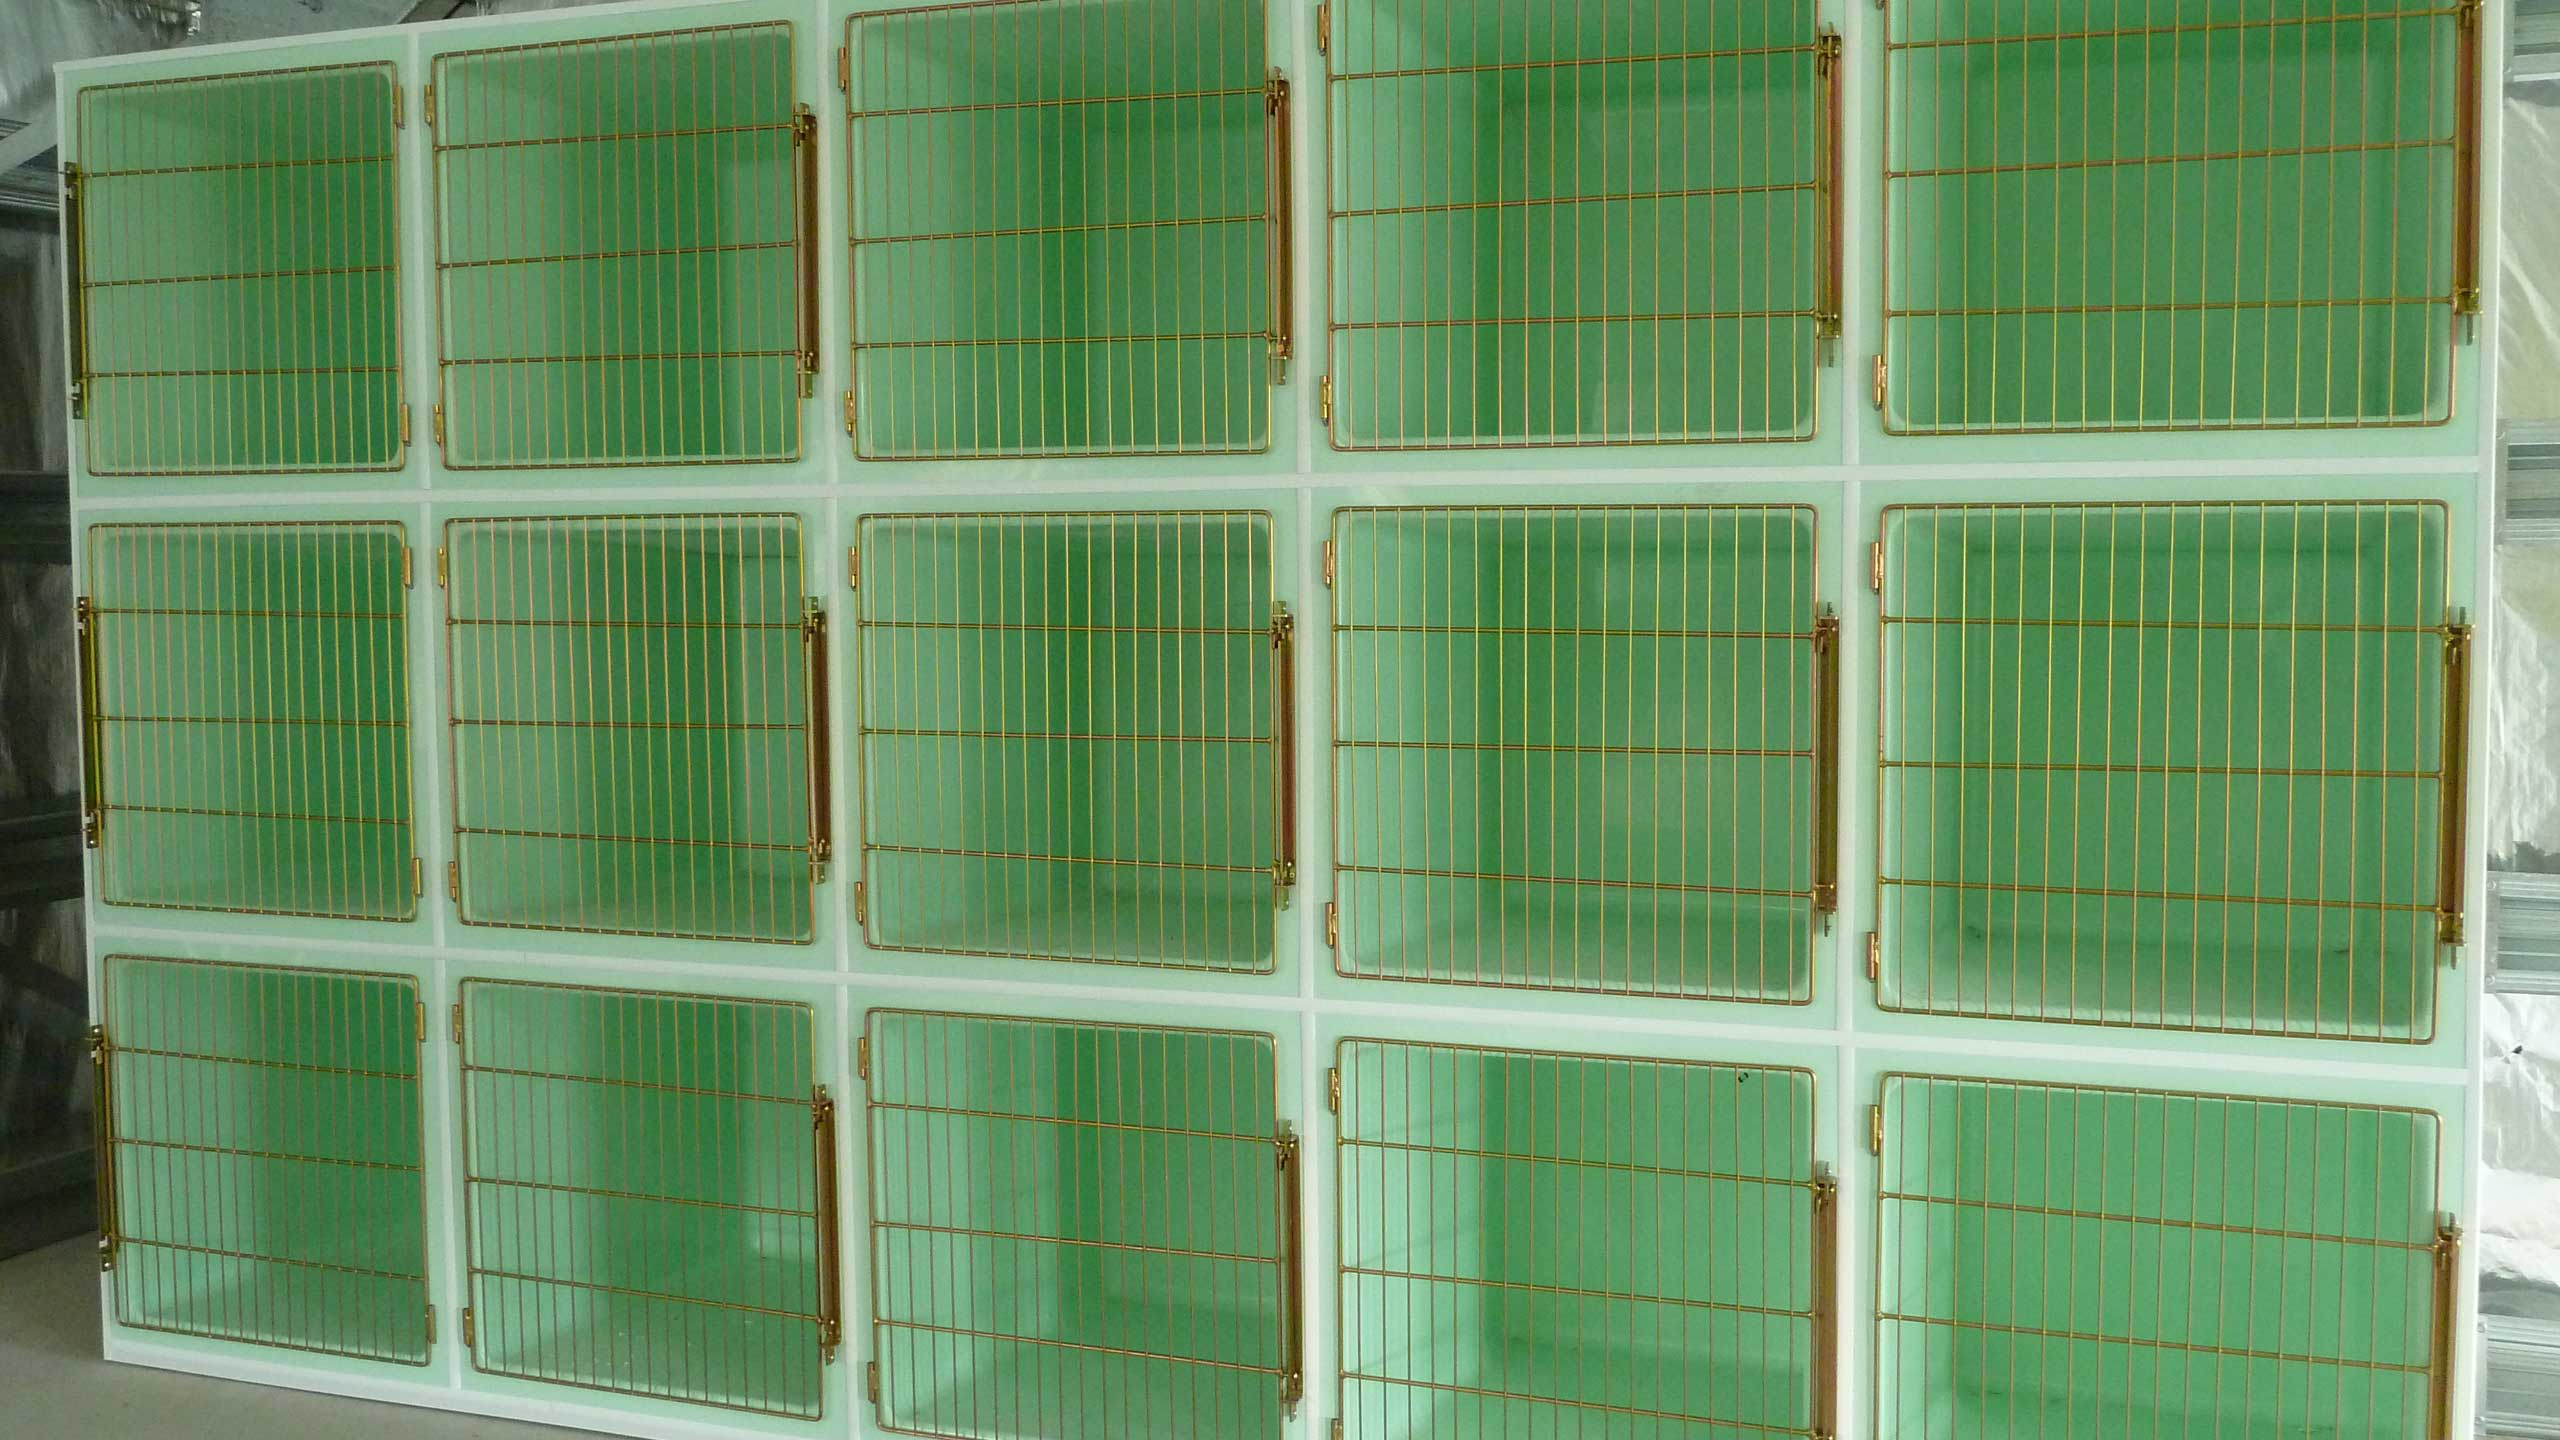 Creature Comfort Cages cage bank: 5 x 3 Cat Cages